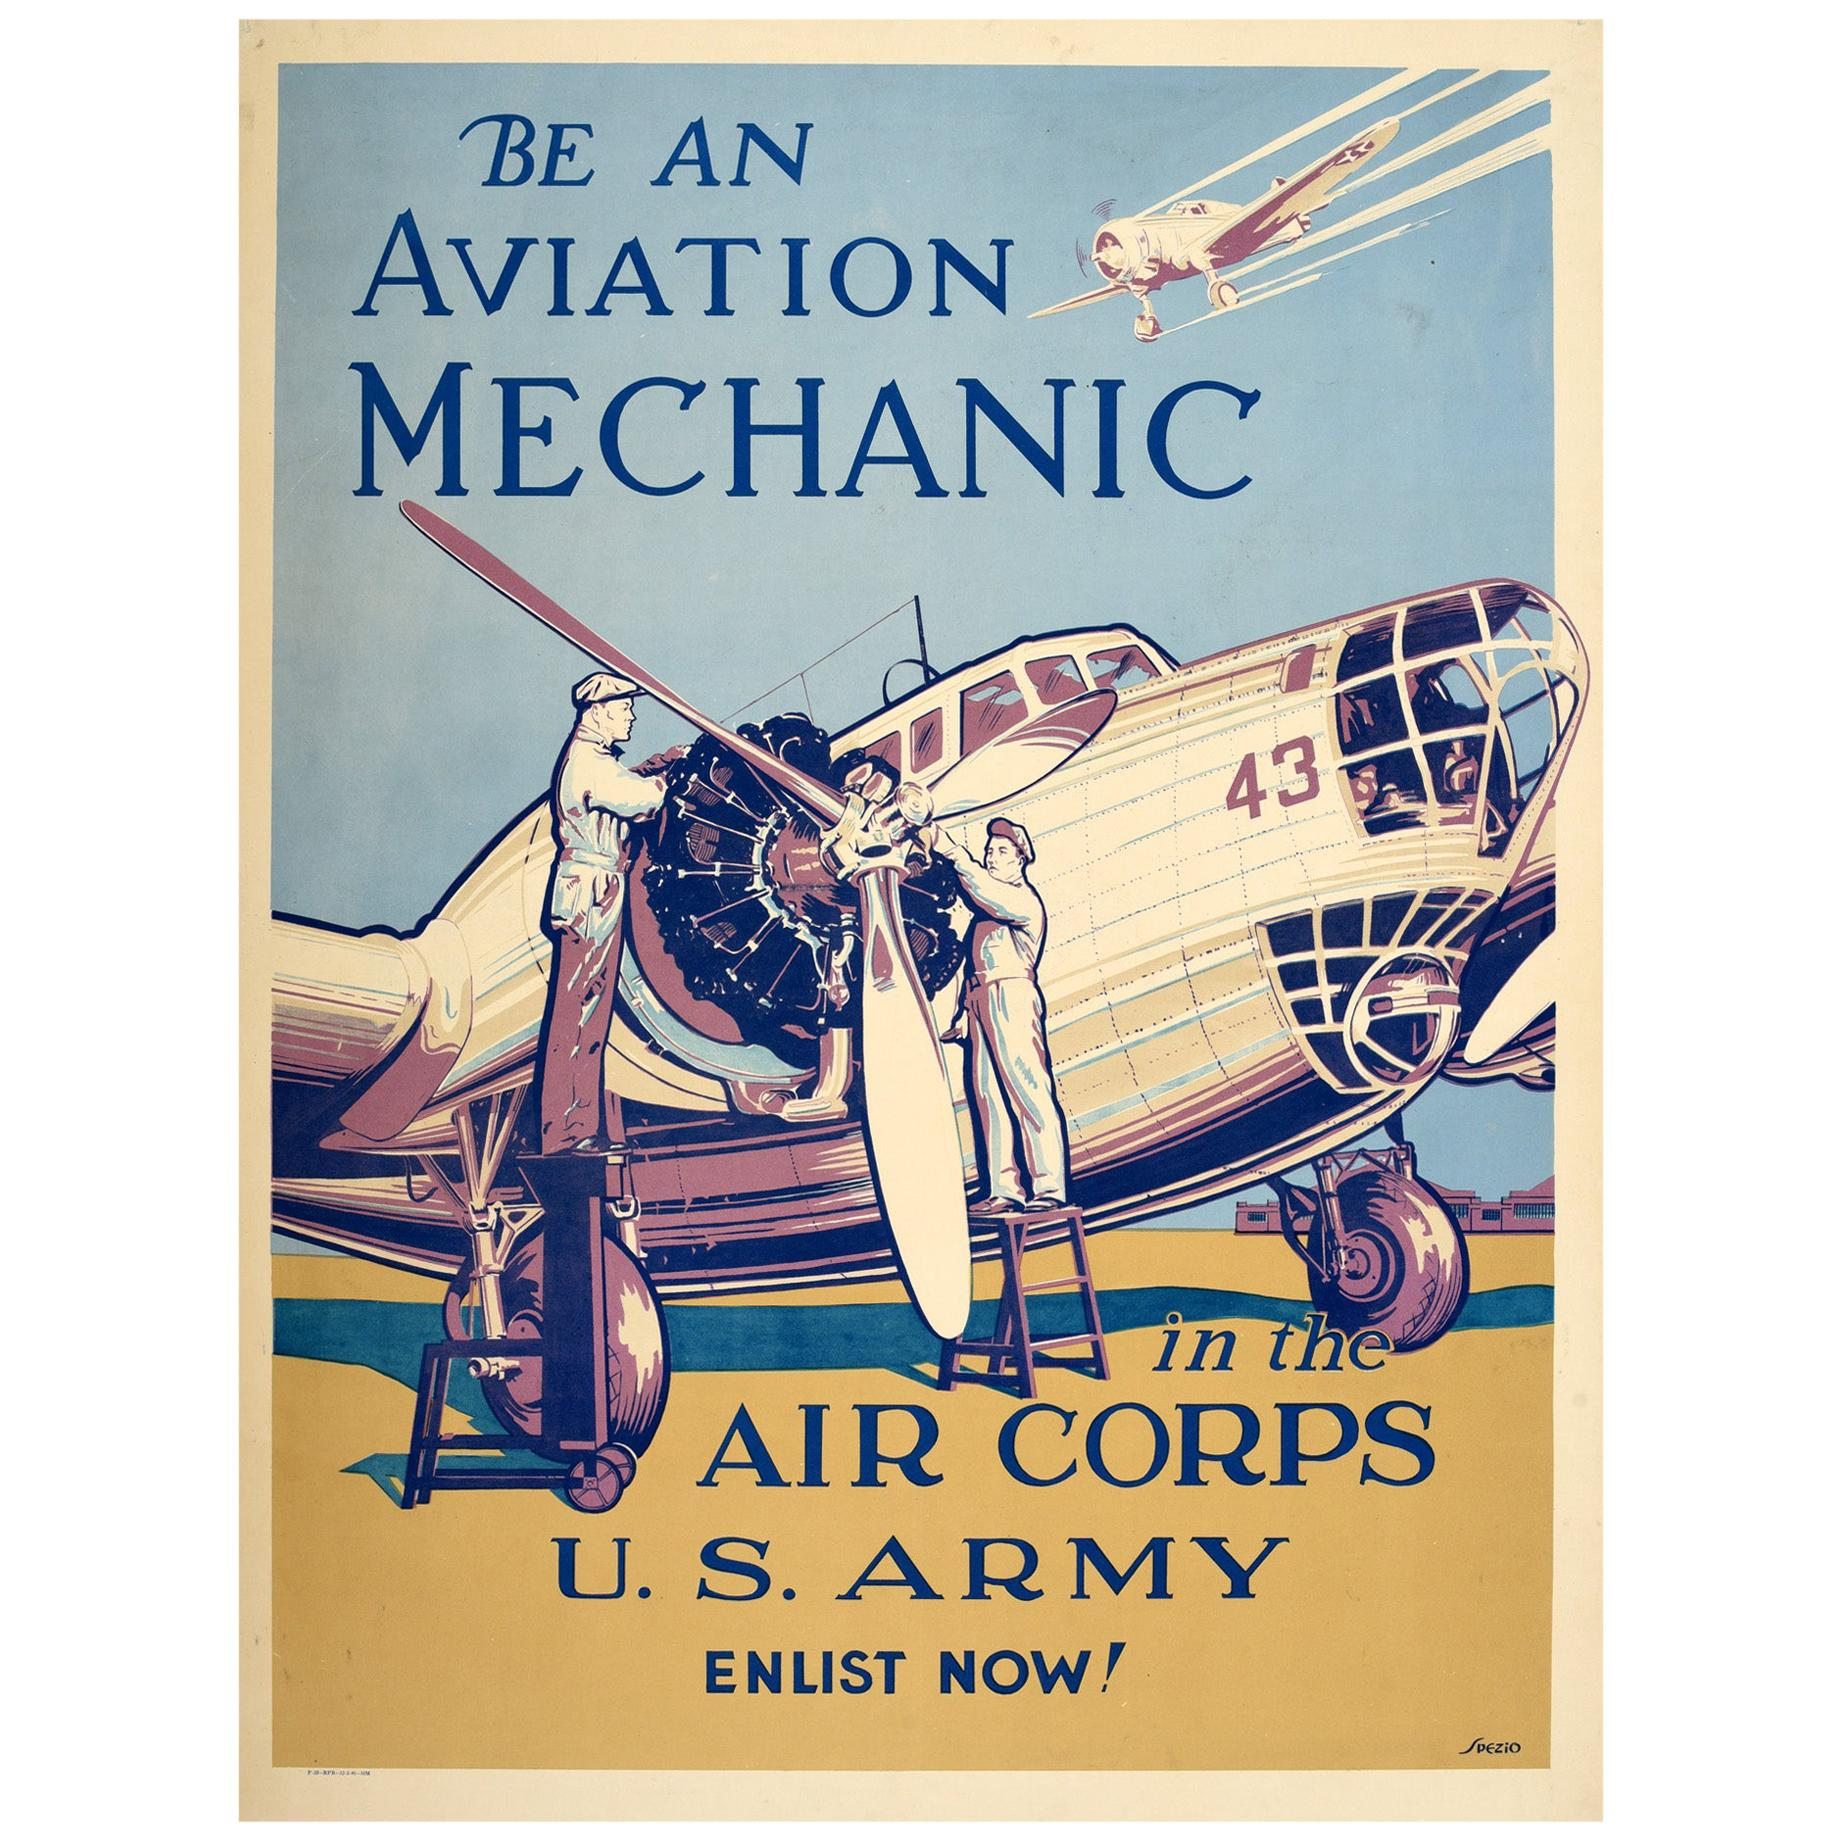 Original Vintage Poster Aviation Mechanic Air Corps US Army WWII Military Plane